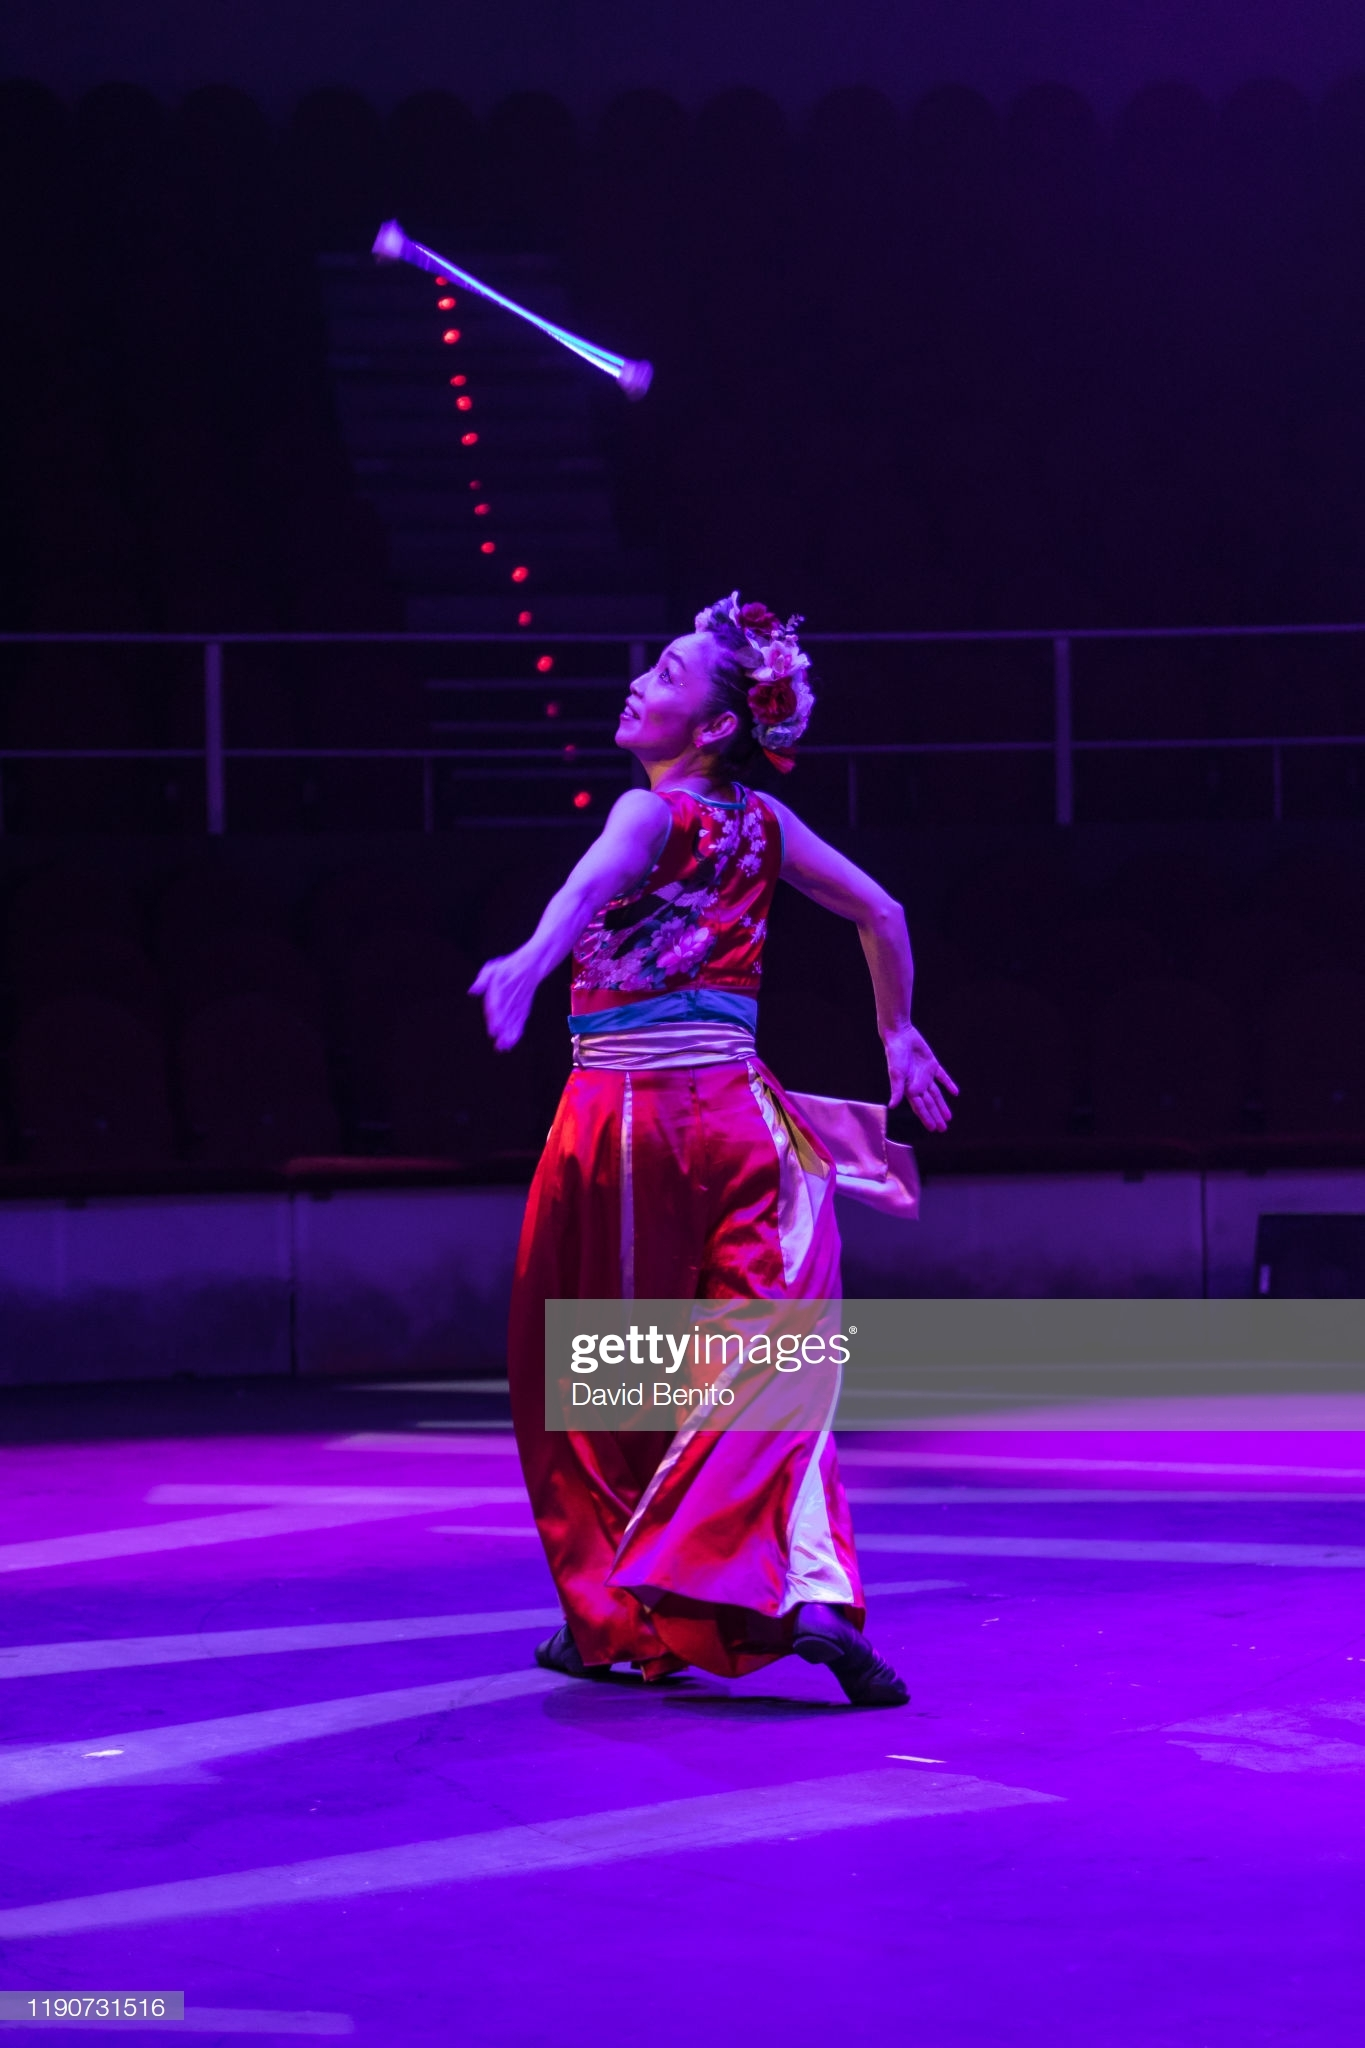 gettyimages-1190731516-2048x2048